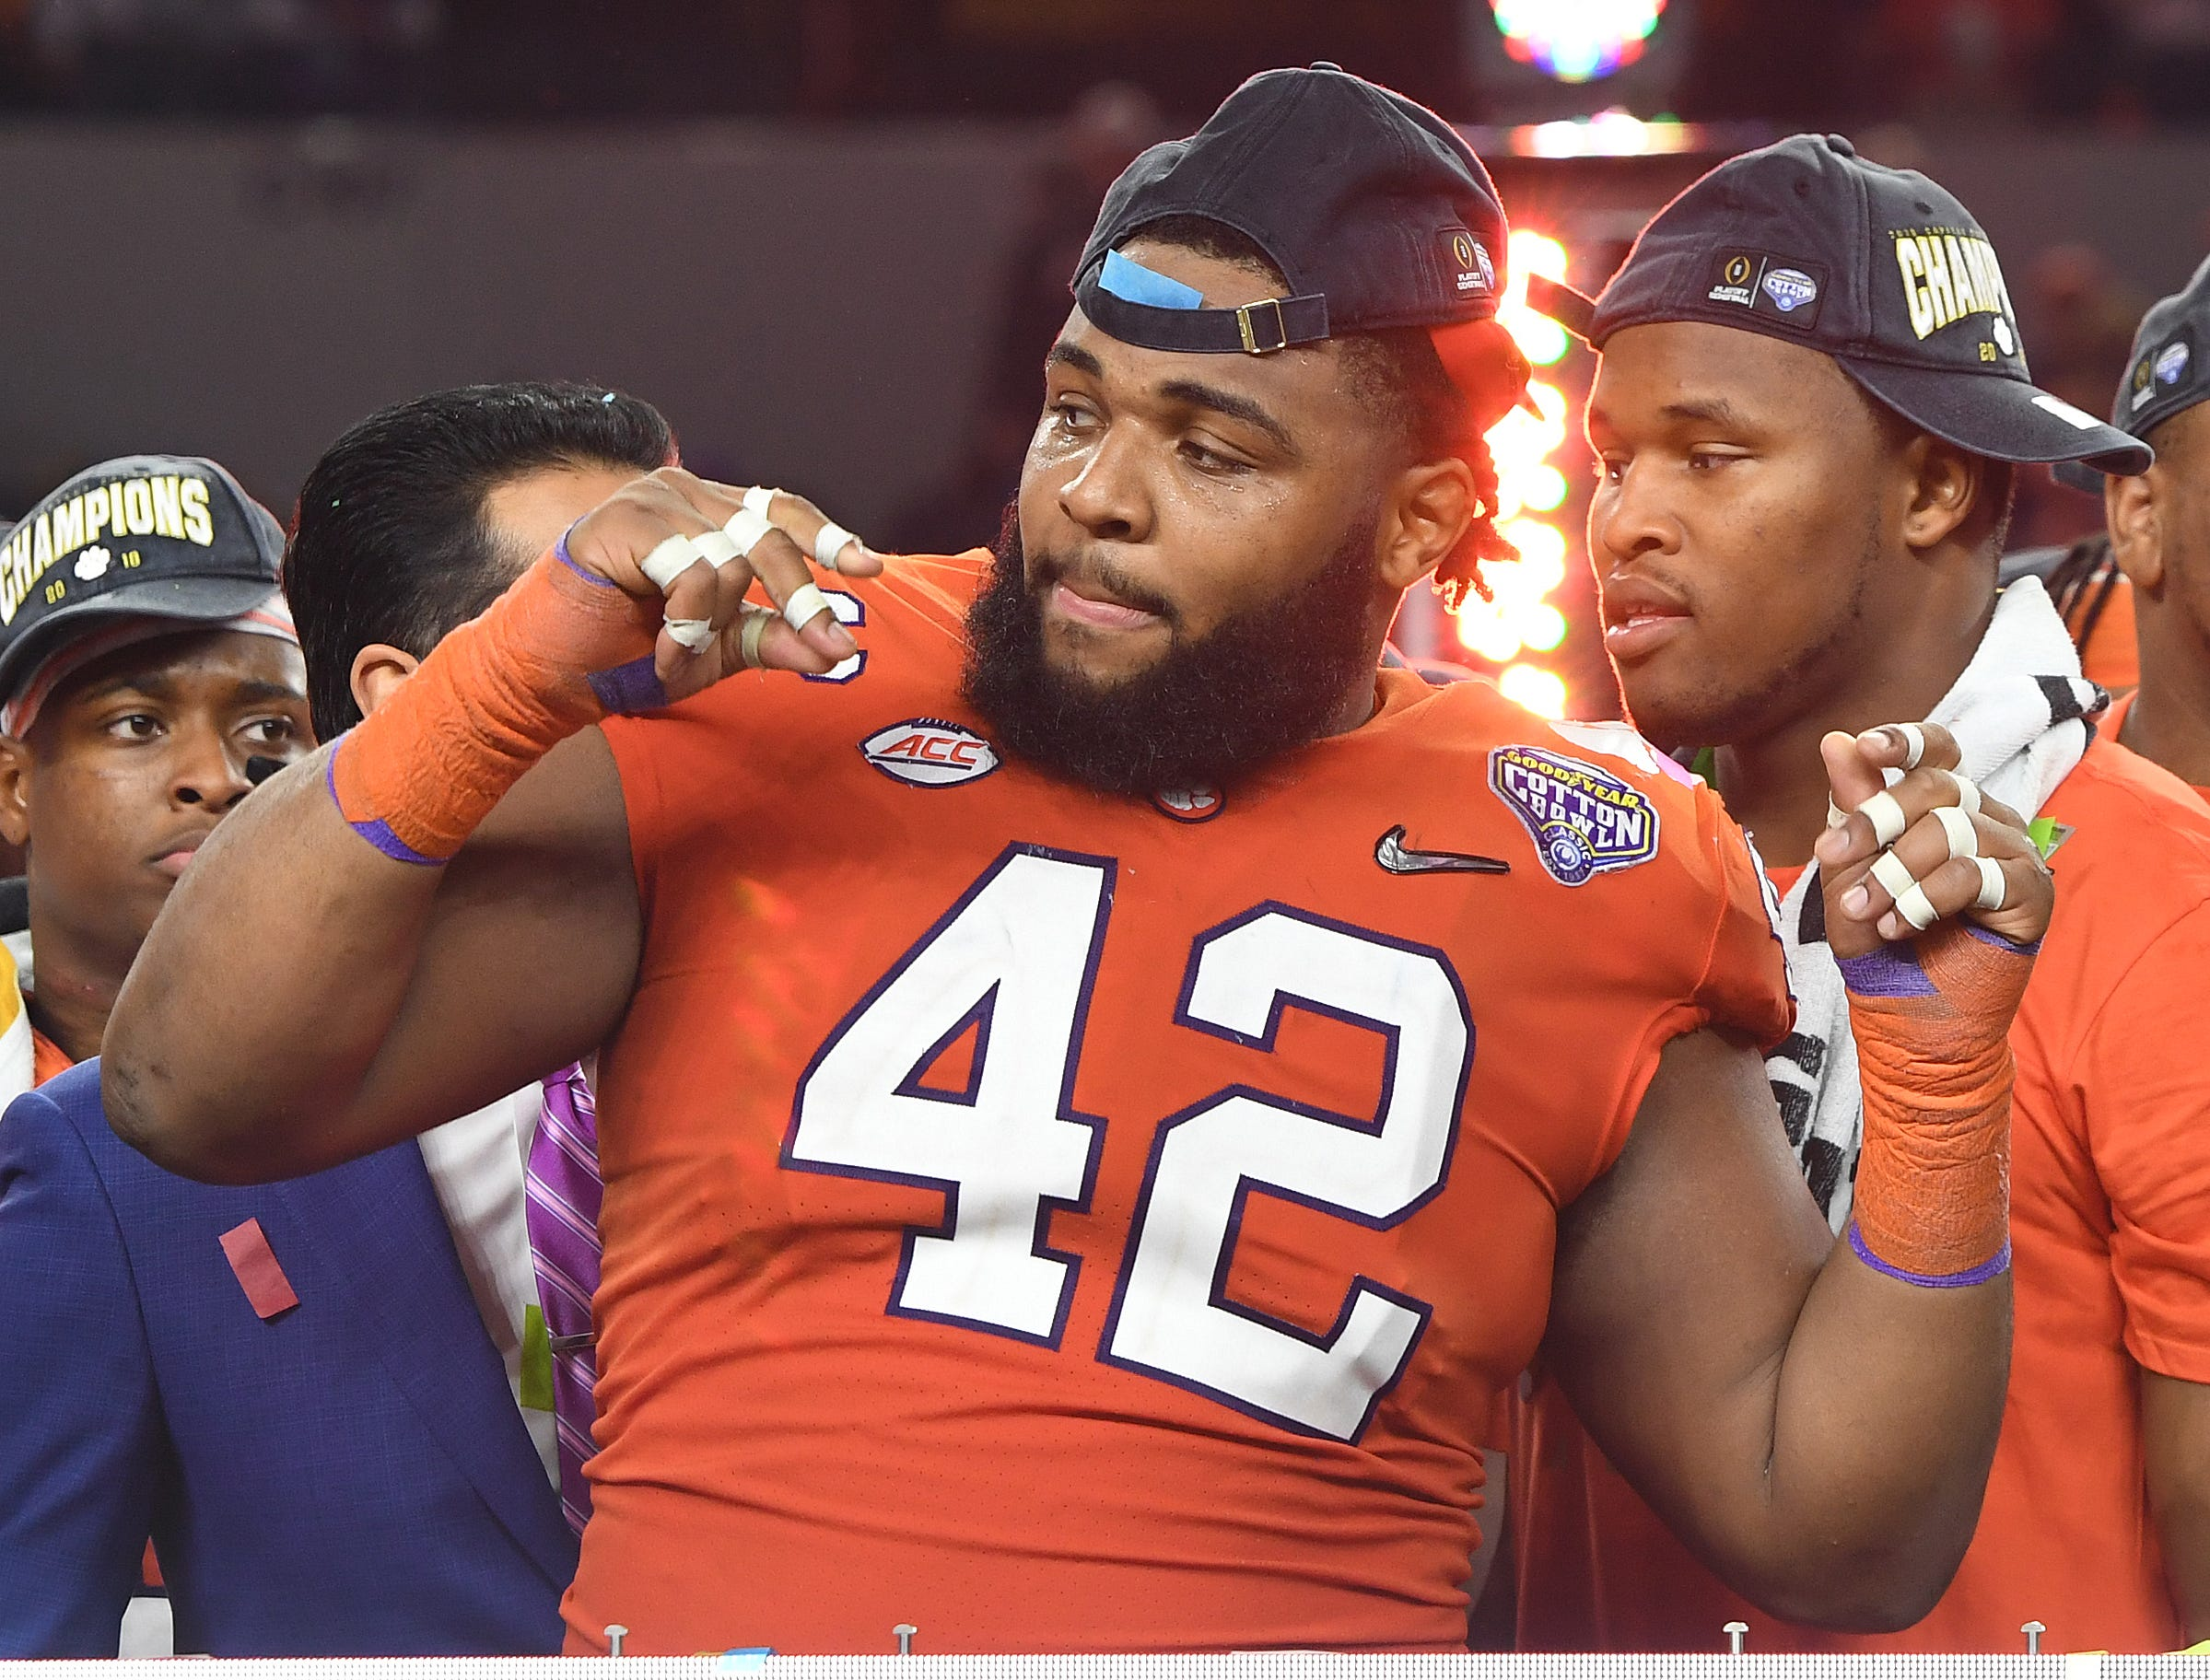 Clemson defensive lineman Christian Wilkins (42) after the Tigers 30-3 win over Notre Dame in the Goodyear Cotton Bowl at AT&T stadium in Arlington, TX Saturday, December 29, 2018.